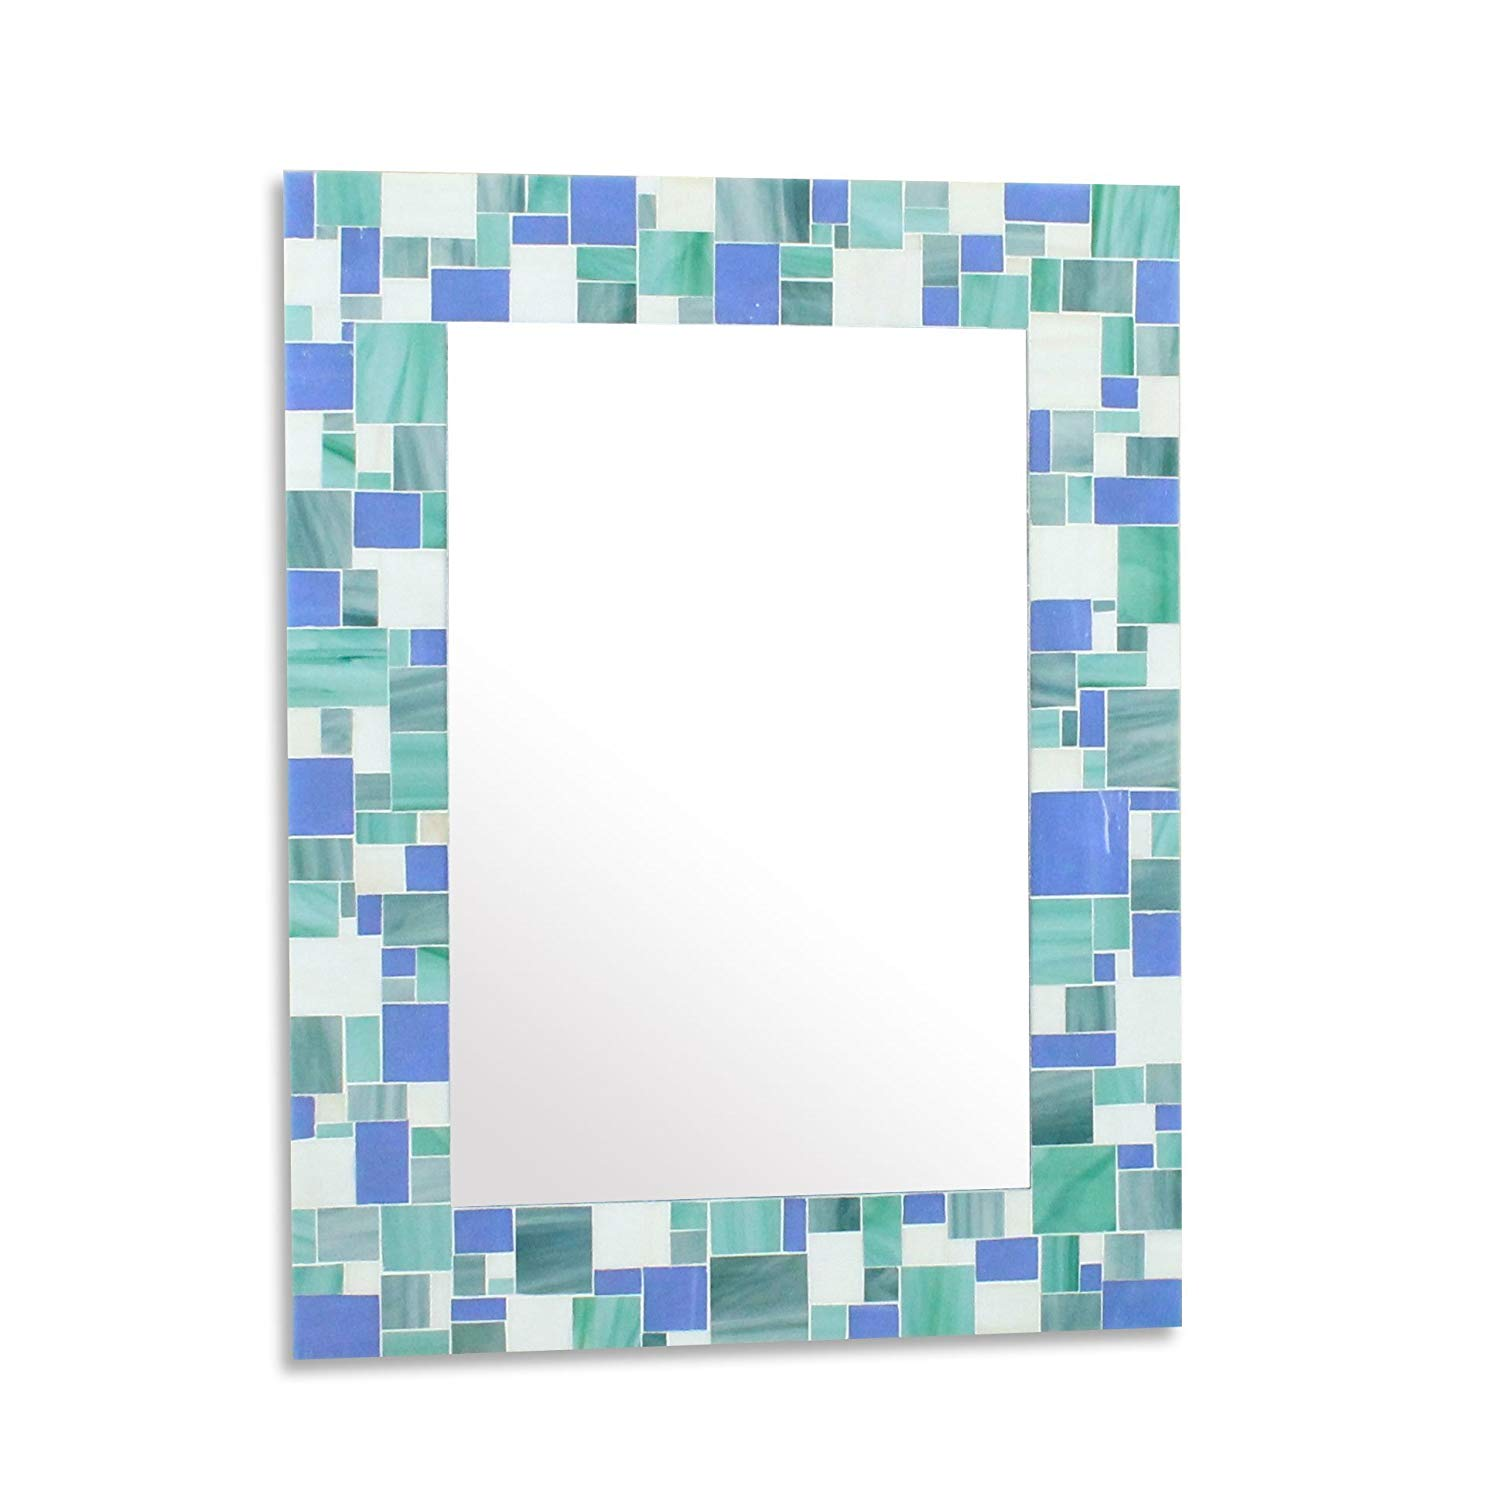 Decorative Mosaic Beach Bathroom Wall Mirror in Blues, Sea Green and White Stained Glass Tiles 24x30 inches